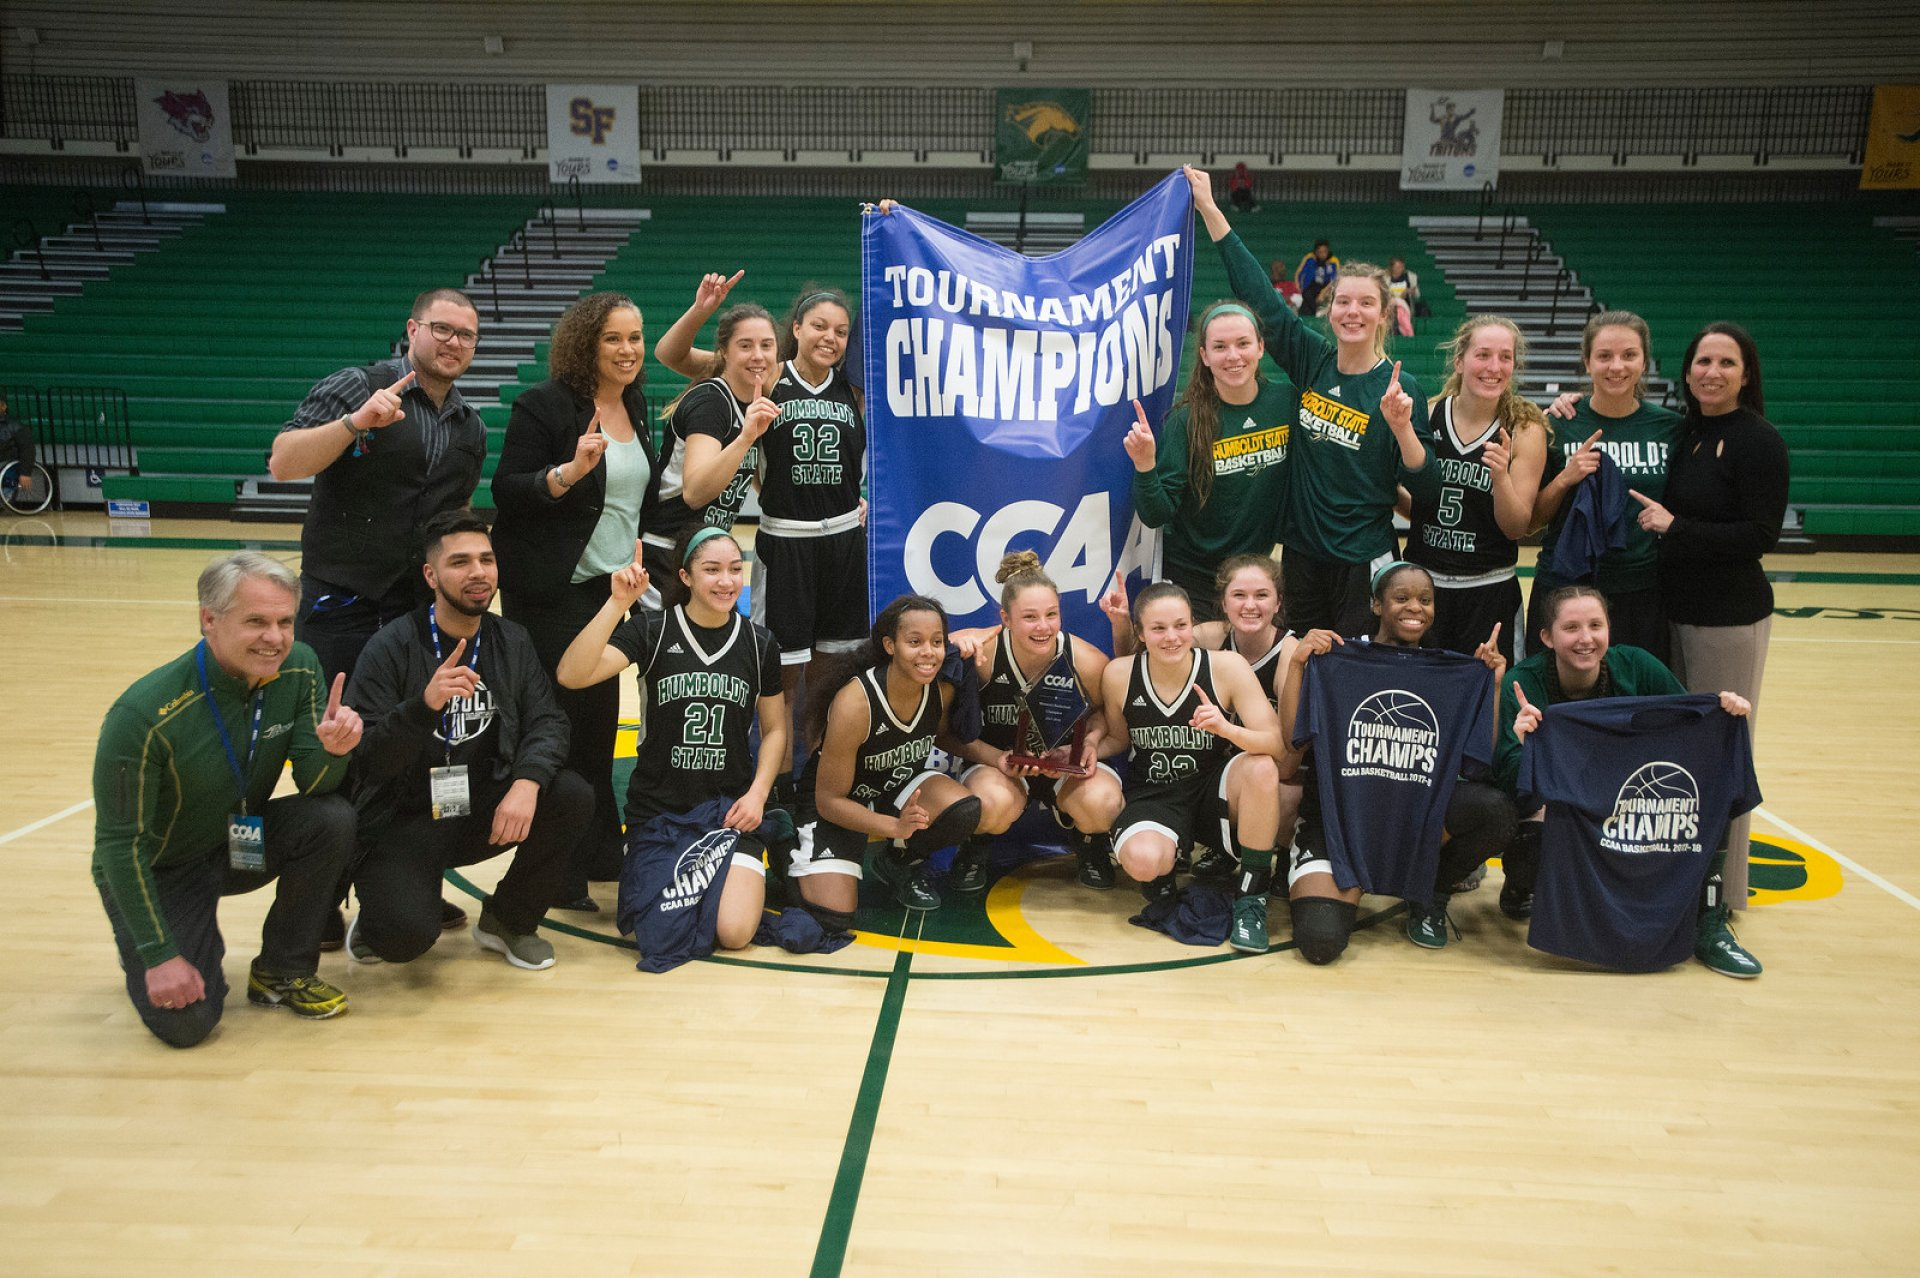 The Lumberjacks basketball team pose together after their thrilling come from behind title win versus UCSD. The Jacks won 76-75 and move on to the NCAA D-2 tourney on March 9. Photo courtesy of CPP.